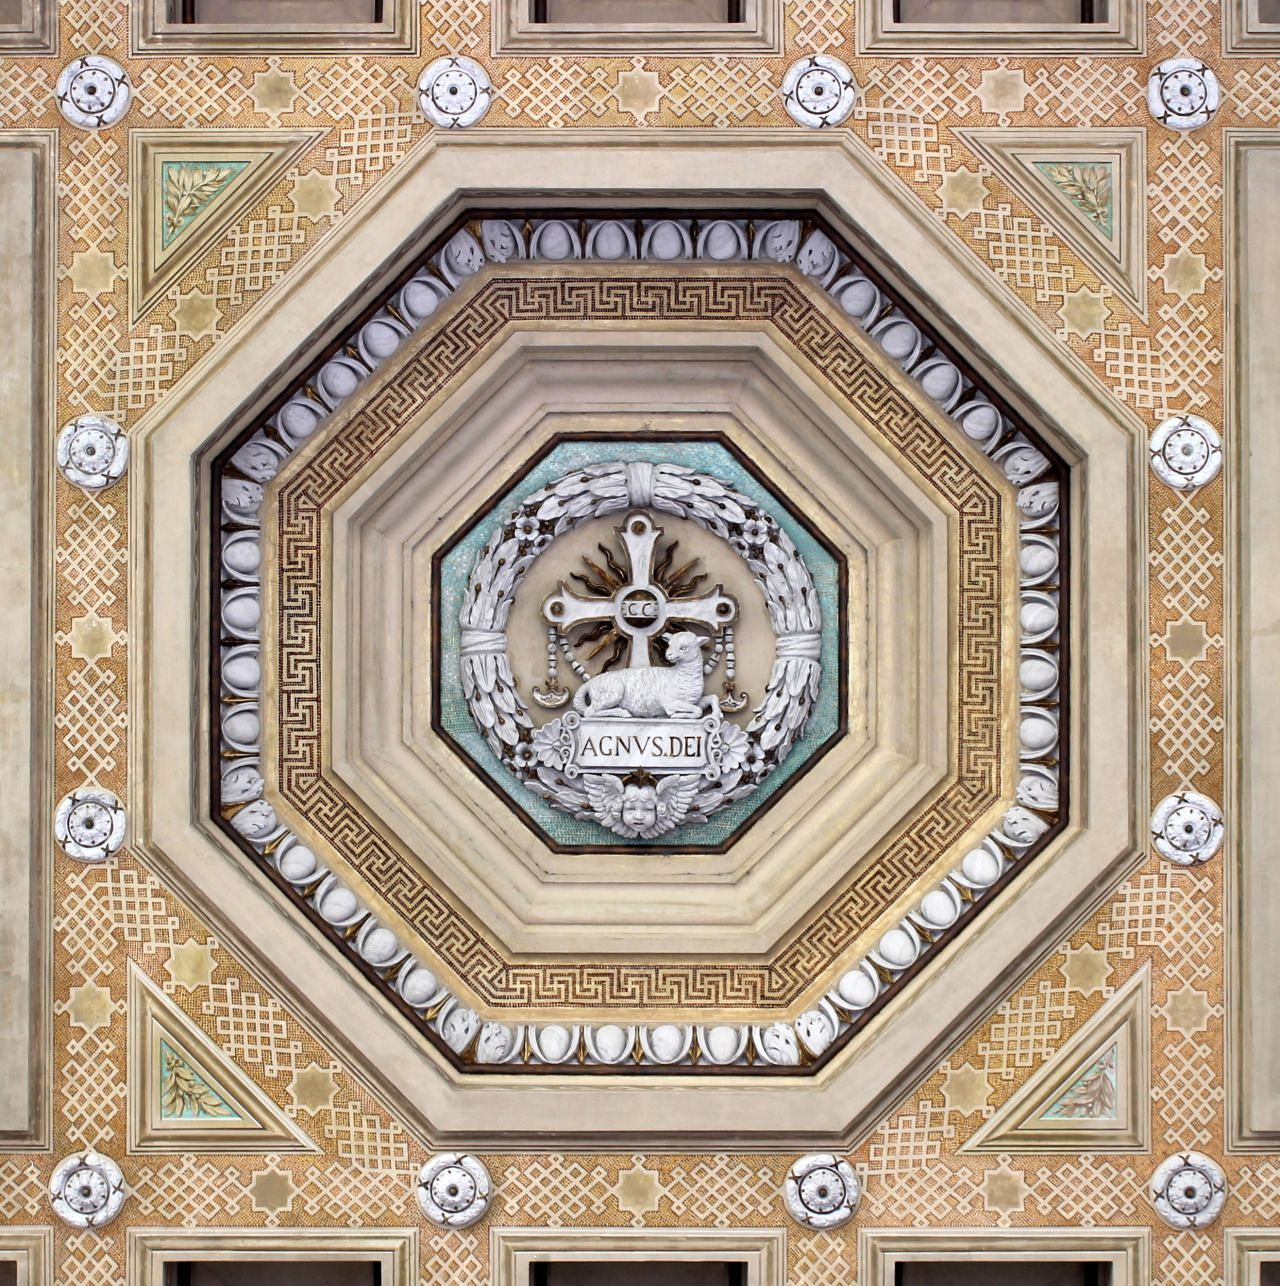 """echiromani: """"Coffered ceiling at Saint Paul Outside the Walls: Ecce Agnus Dei, Behold the Lamb of God. """""""